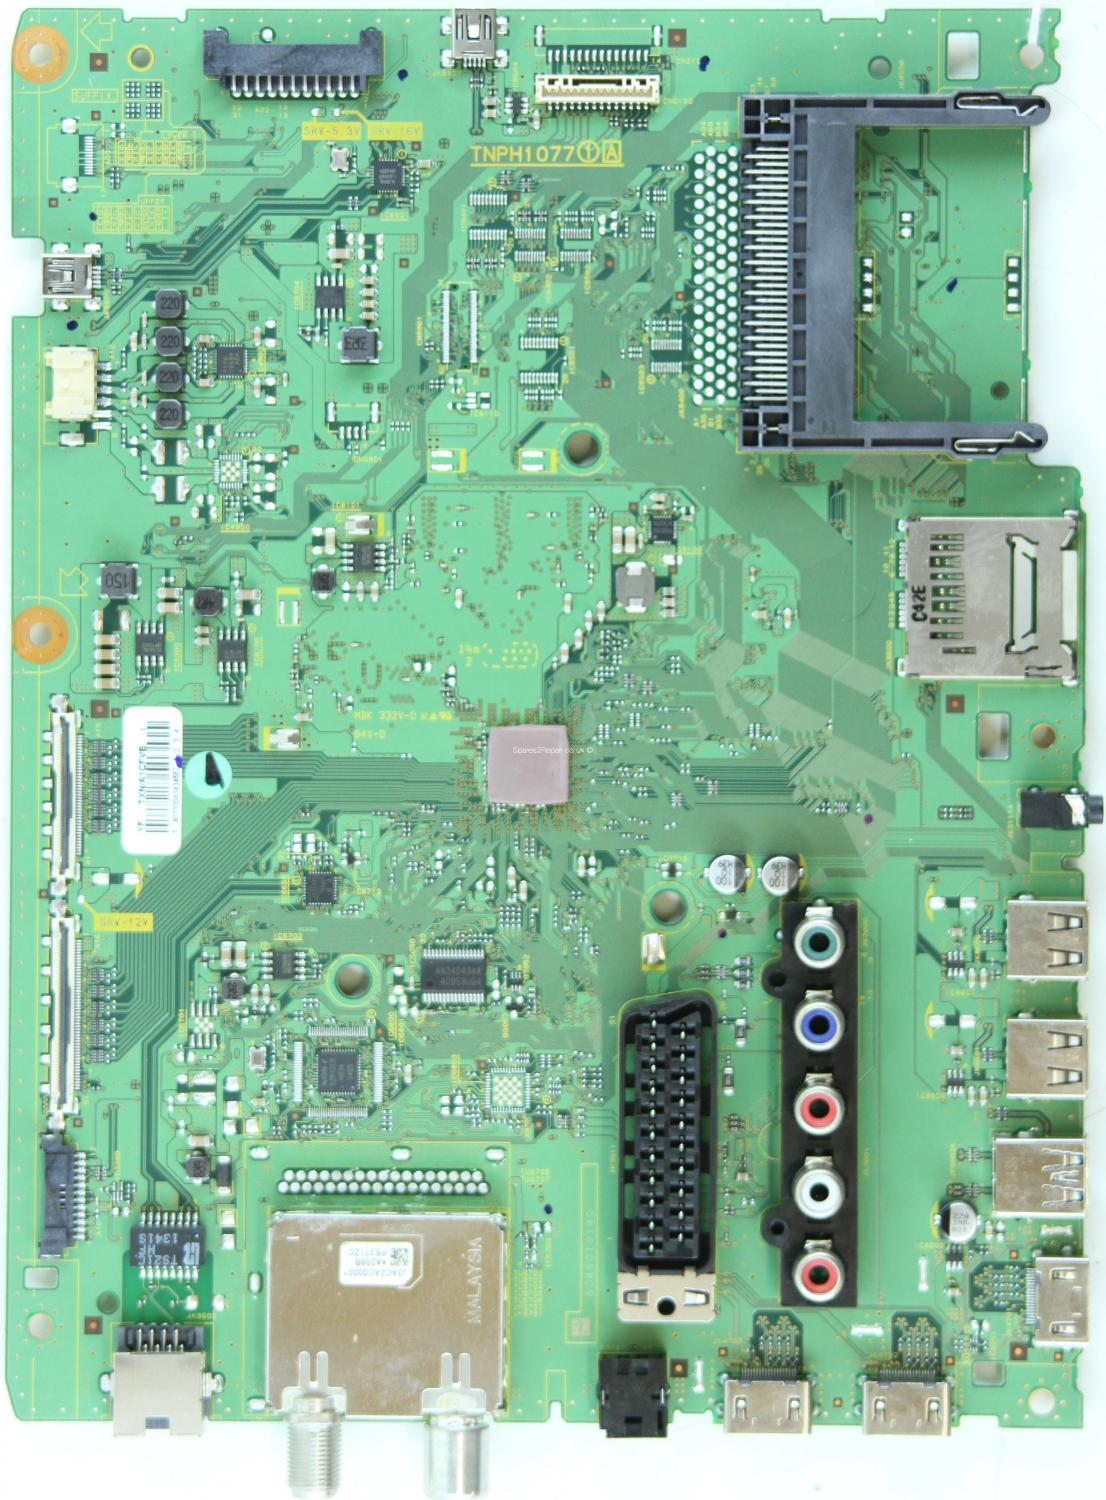 Panasonic TX-47AS740B - Main AV - TXN/A1CFVB YF - TNPH1077 1A